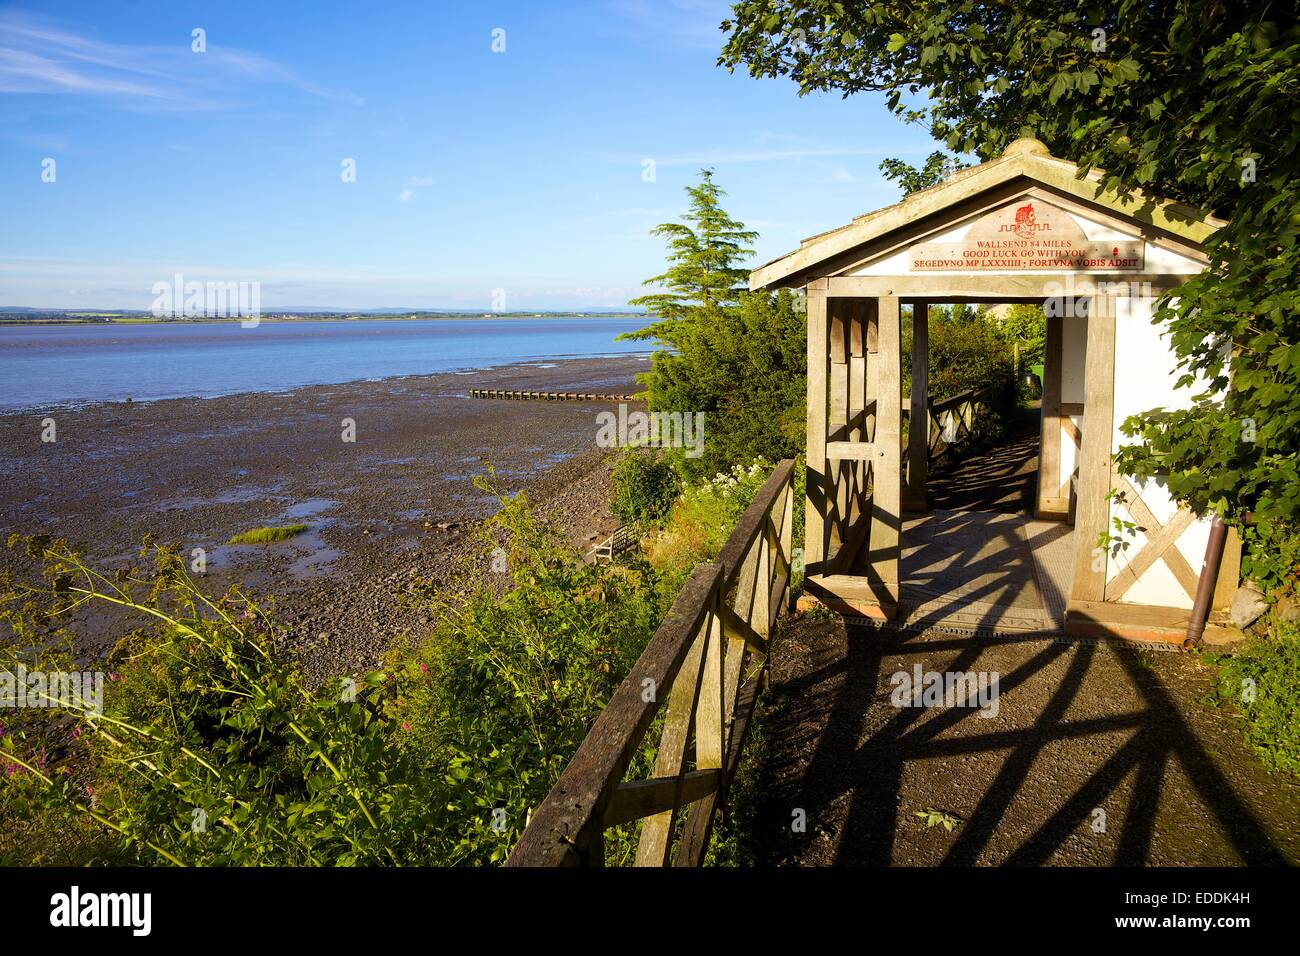 Summerhouse at theTerminus of Hadrian's Wall, Bowness-on-Solway Cumbria England UK. - Stock Image